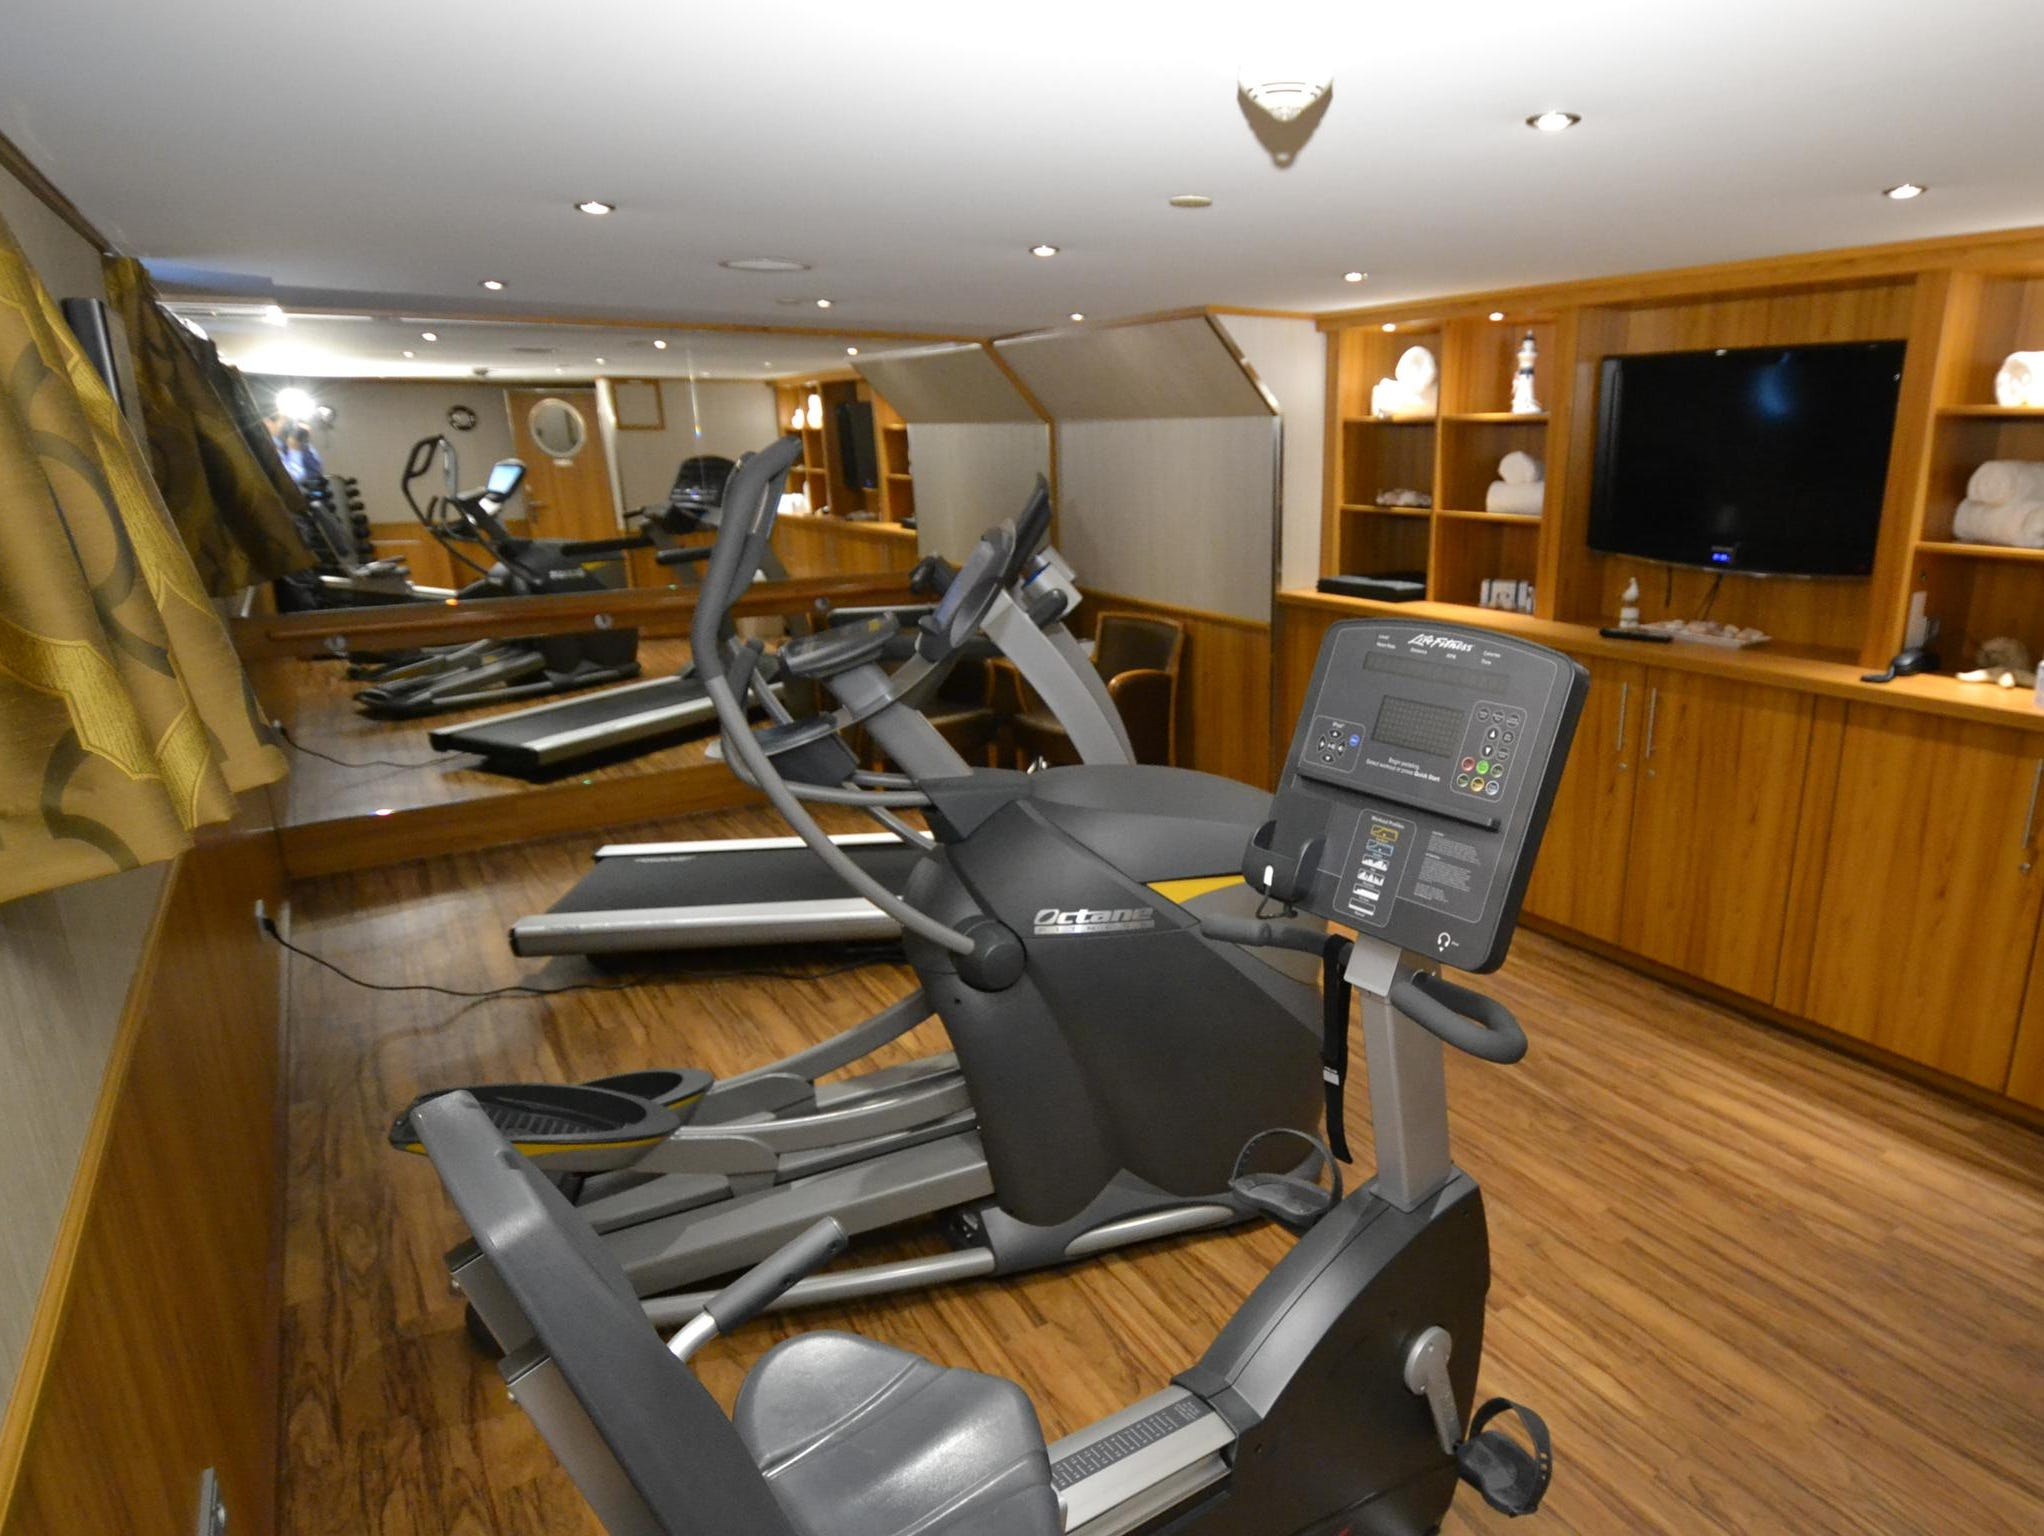 River Discovery II has a small fitness room with a single treadmill, a stationary bicycle, free weights and a step machine.